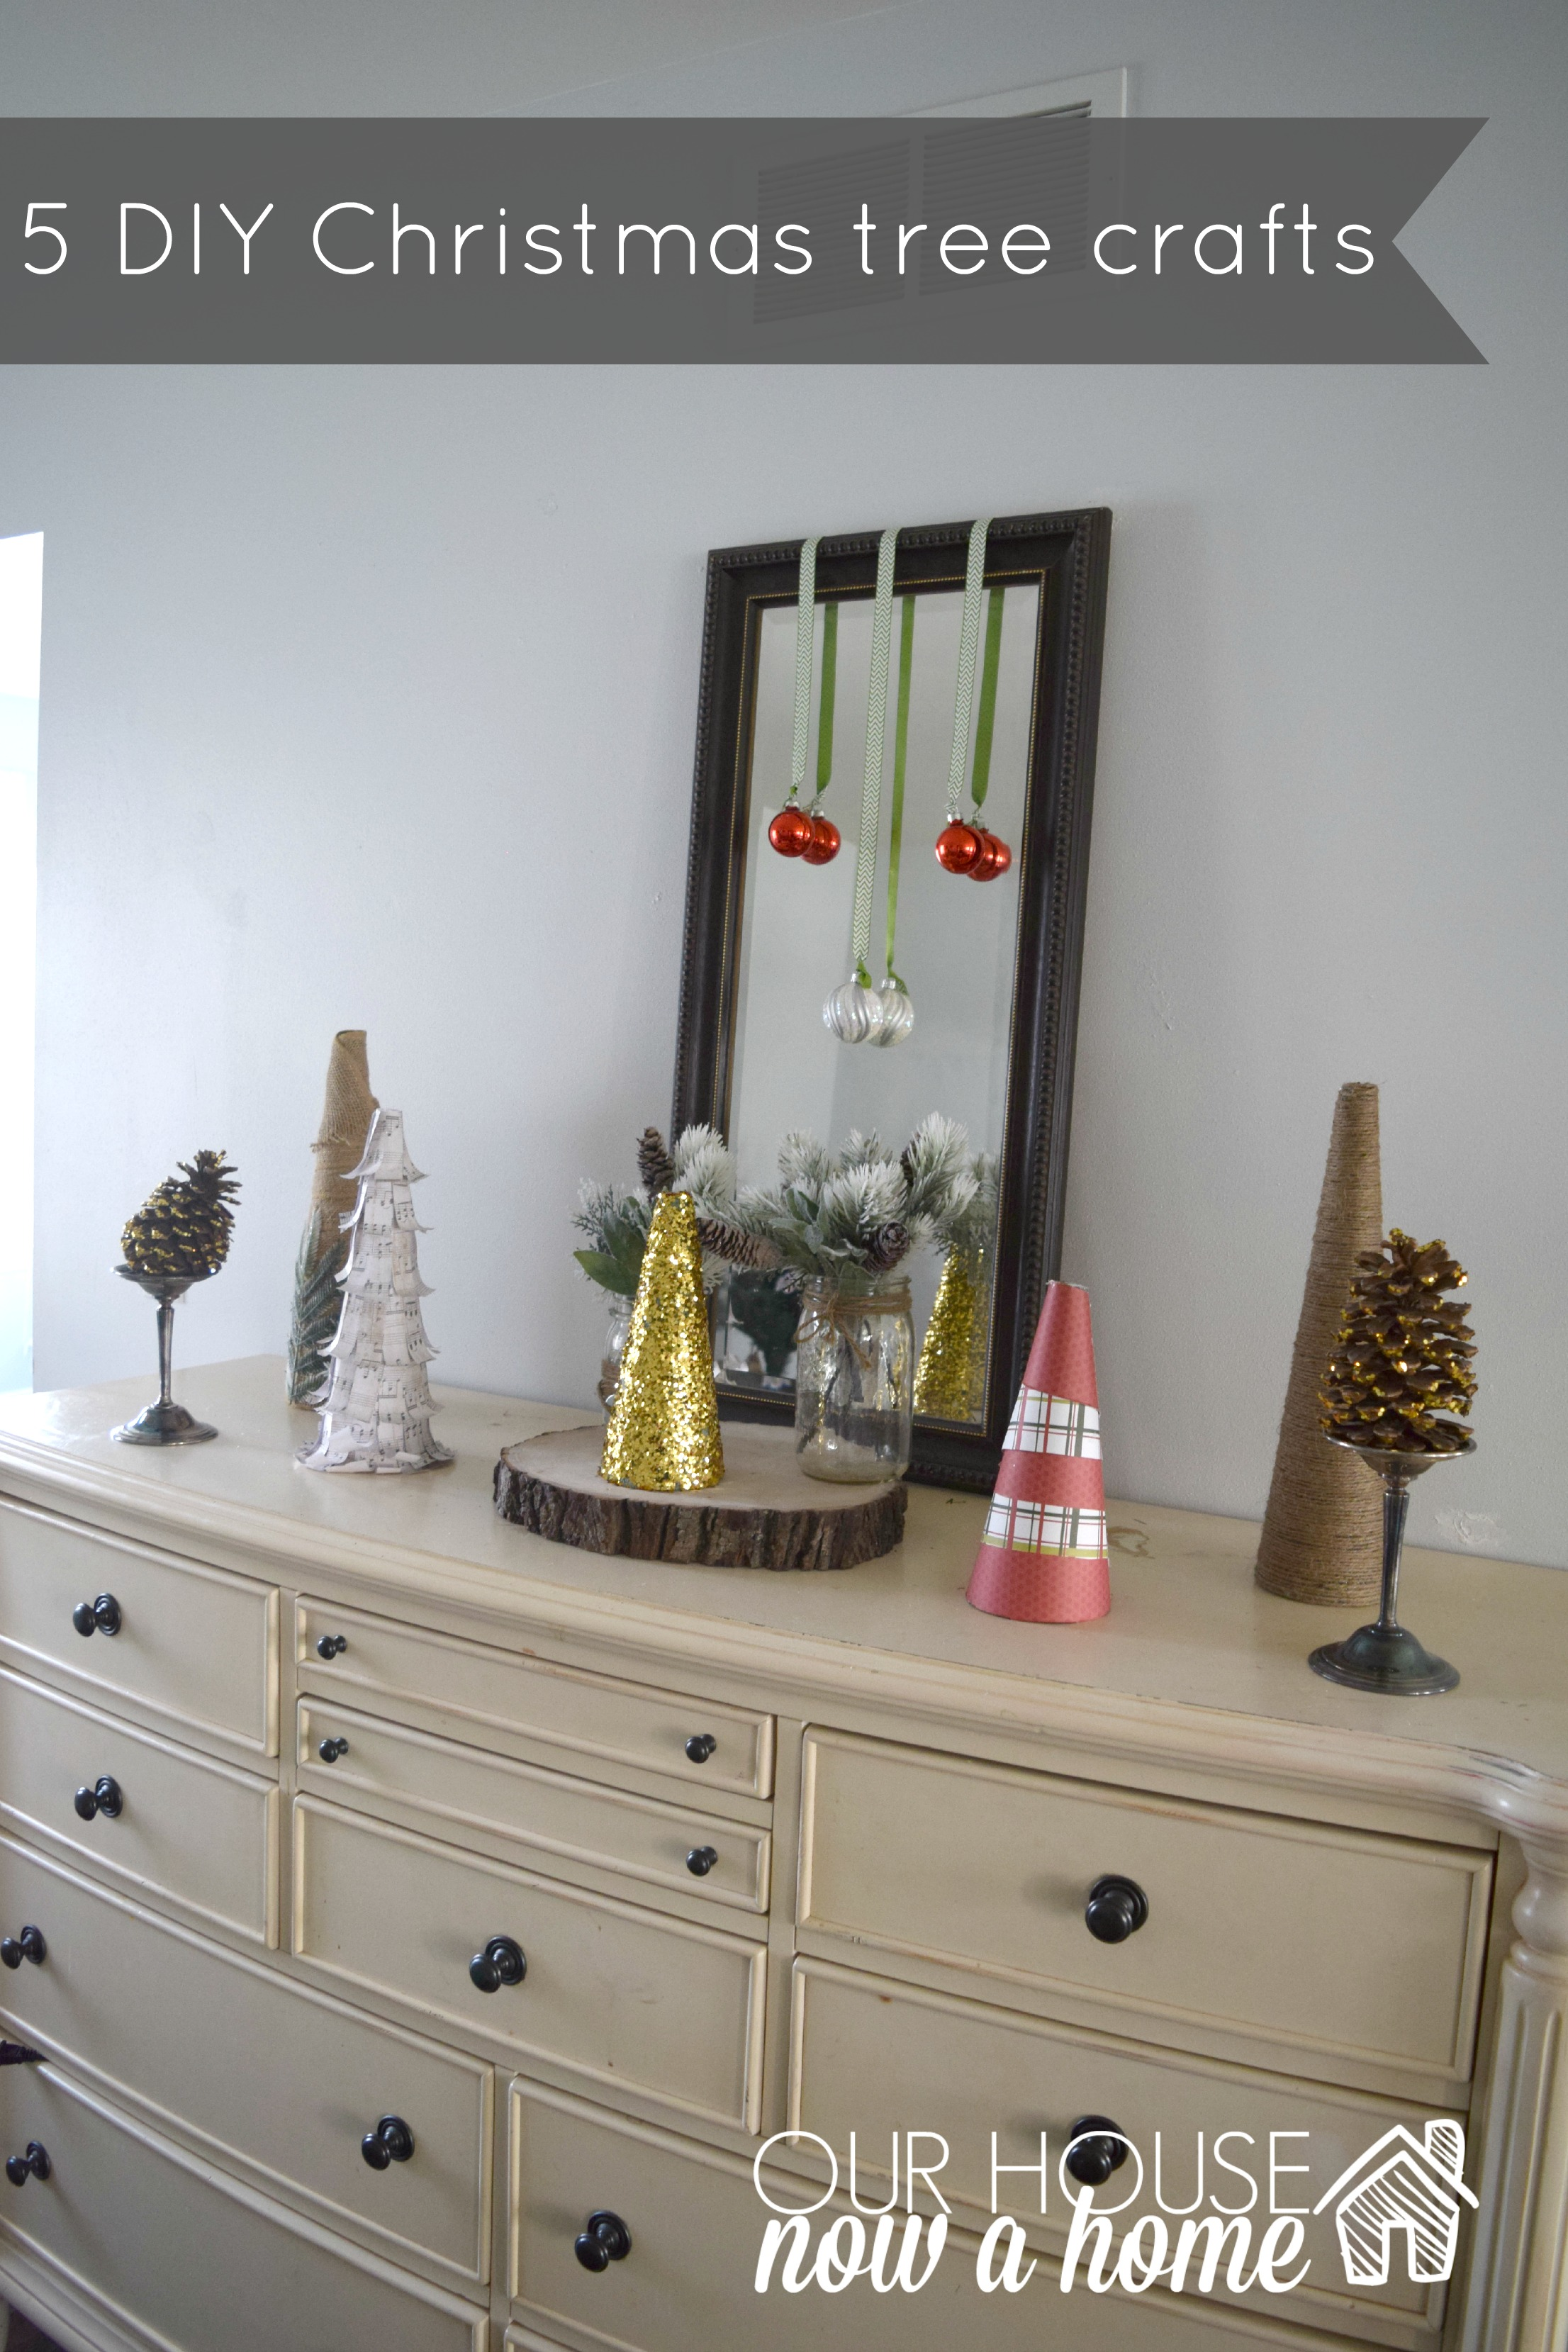 5 DIY CHTISTMAS TREE CRAFTS WITH TITLE